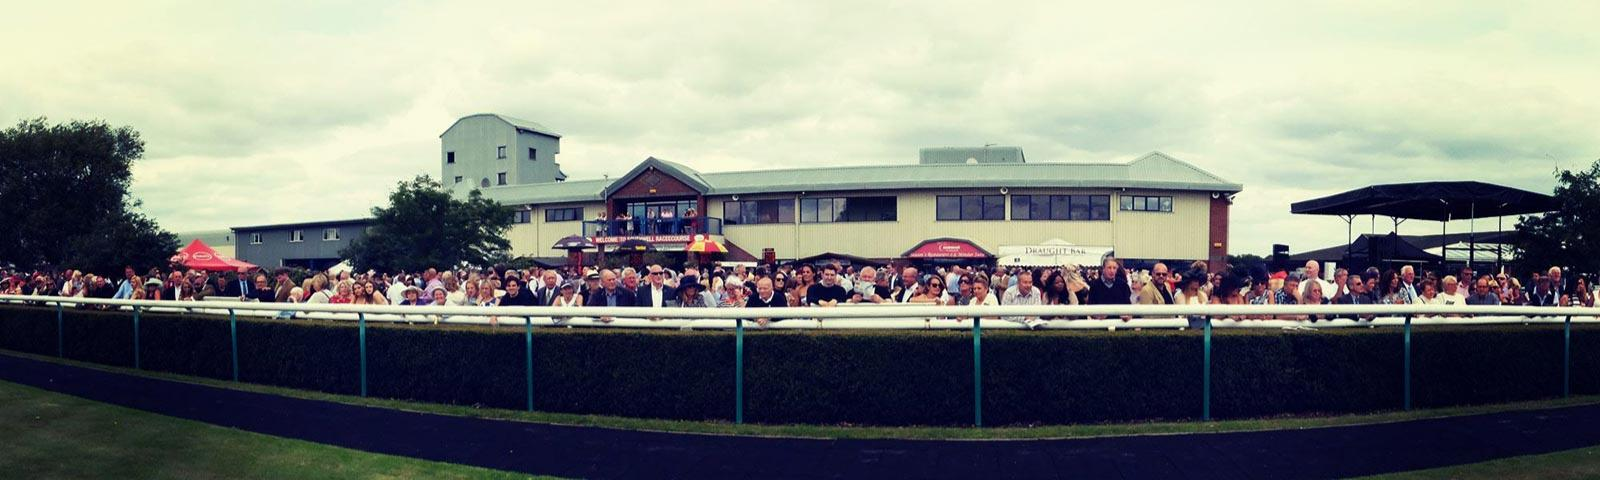 Crowds in front of the grandstand at Southwell Racecourse